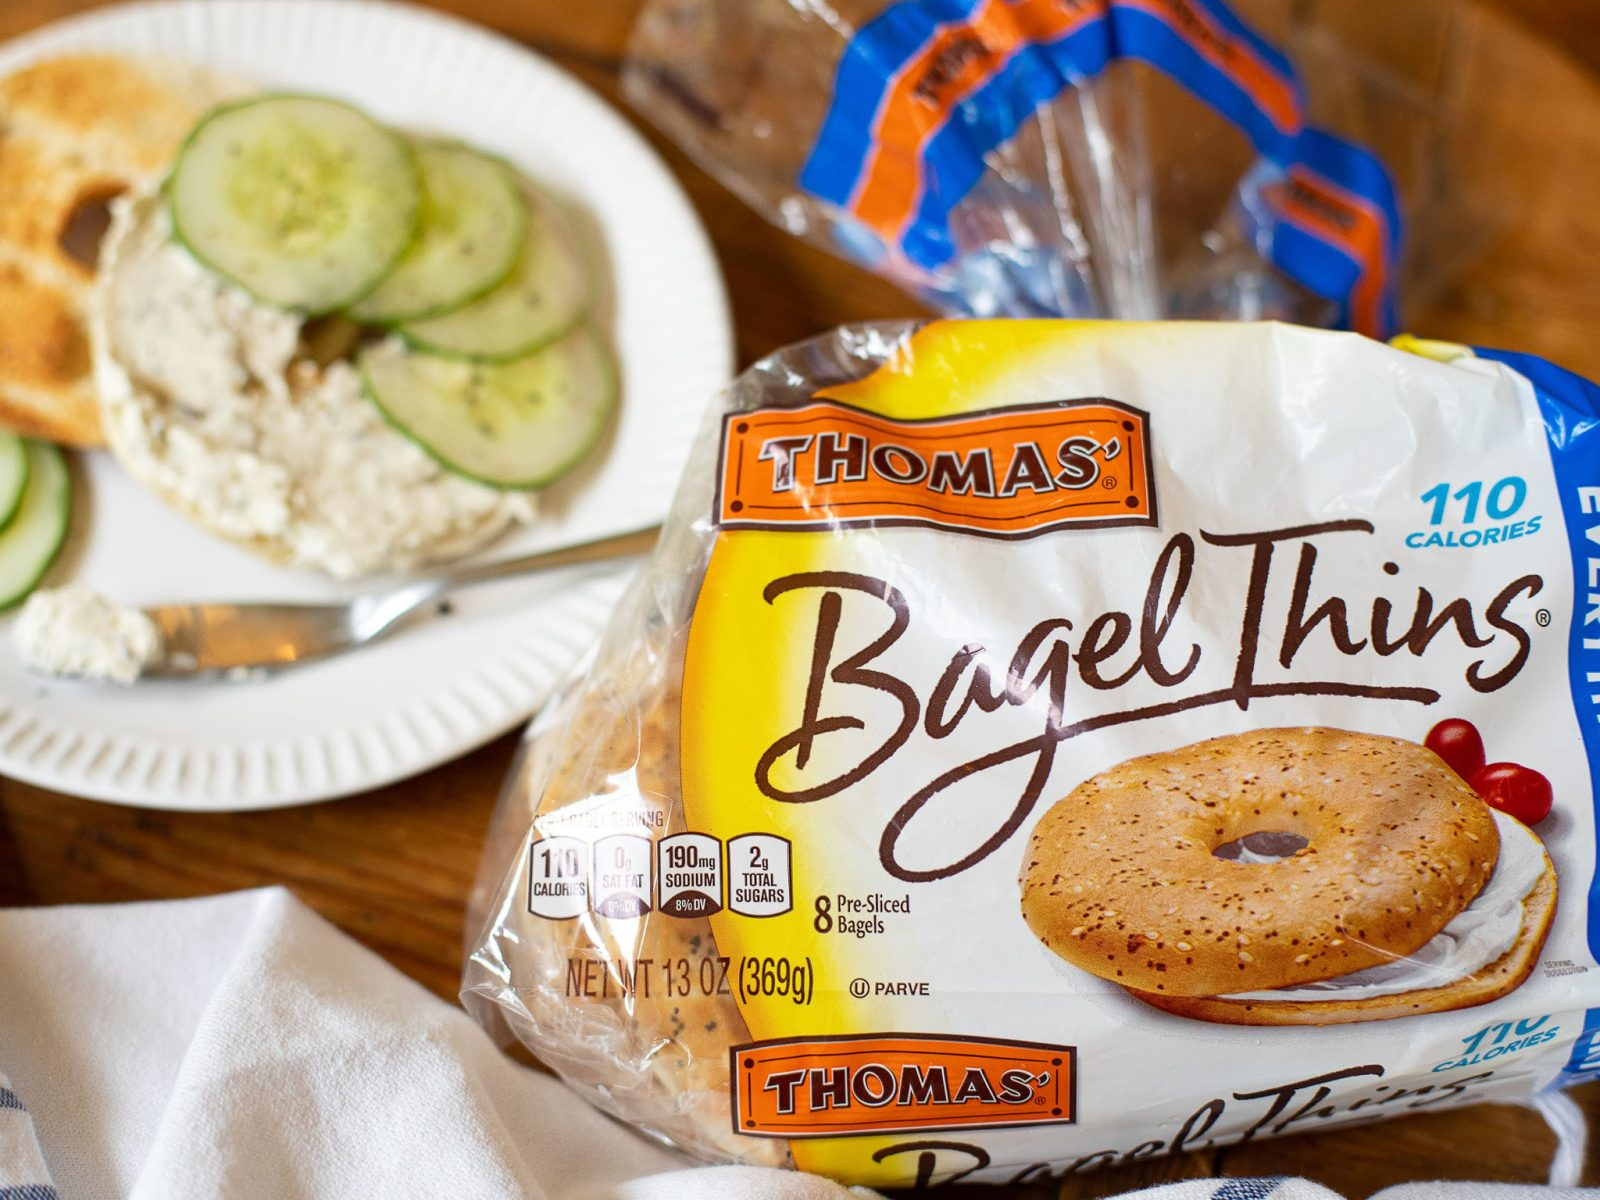 Thomas Bagel Thins As Low As $1.50 At Publix on I Heart Publix